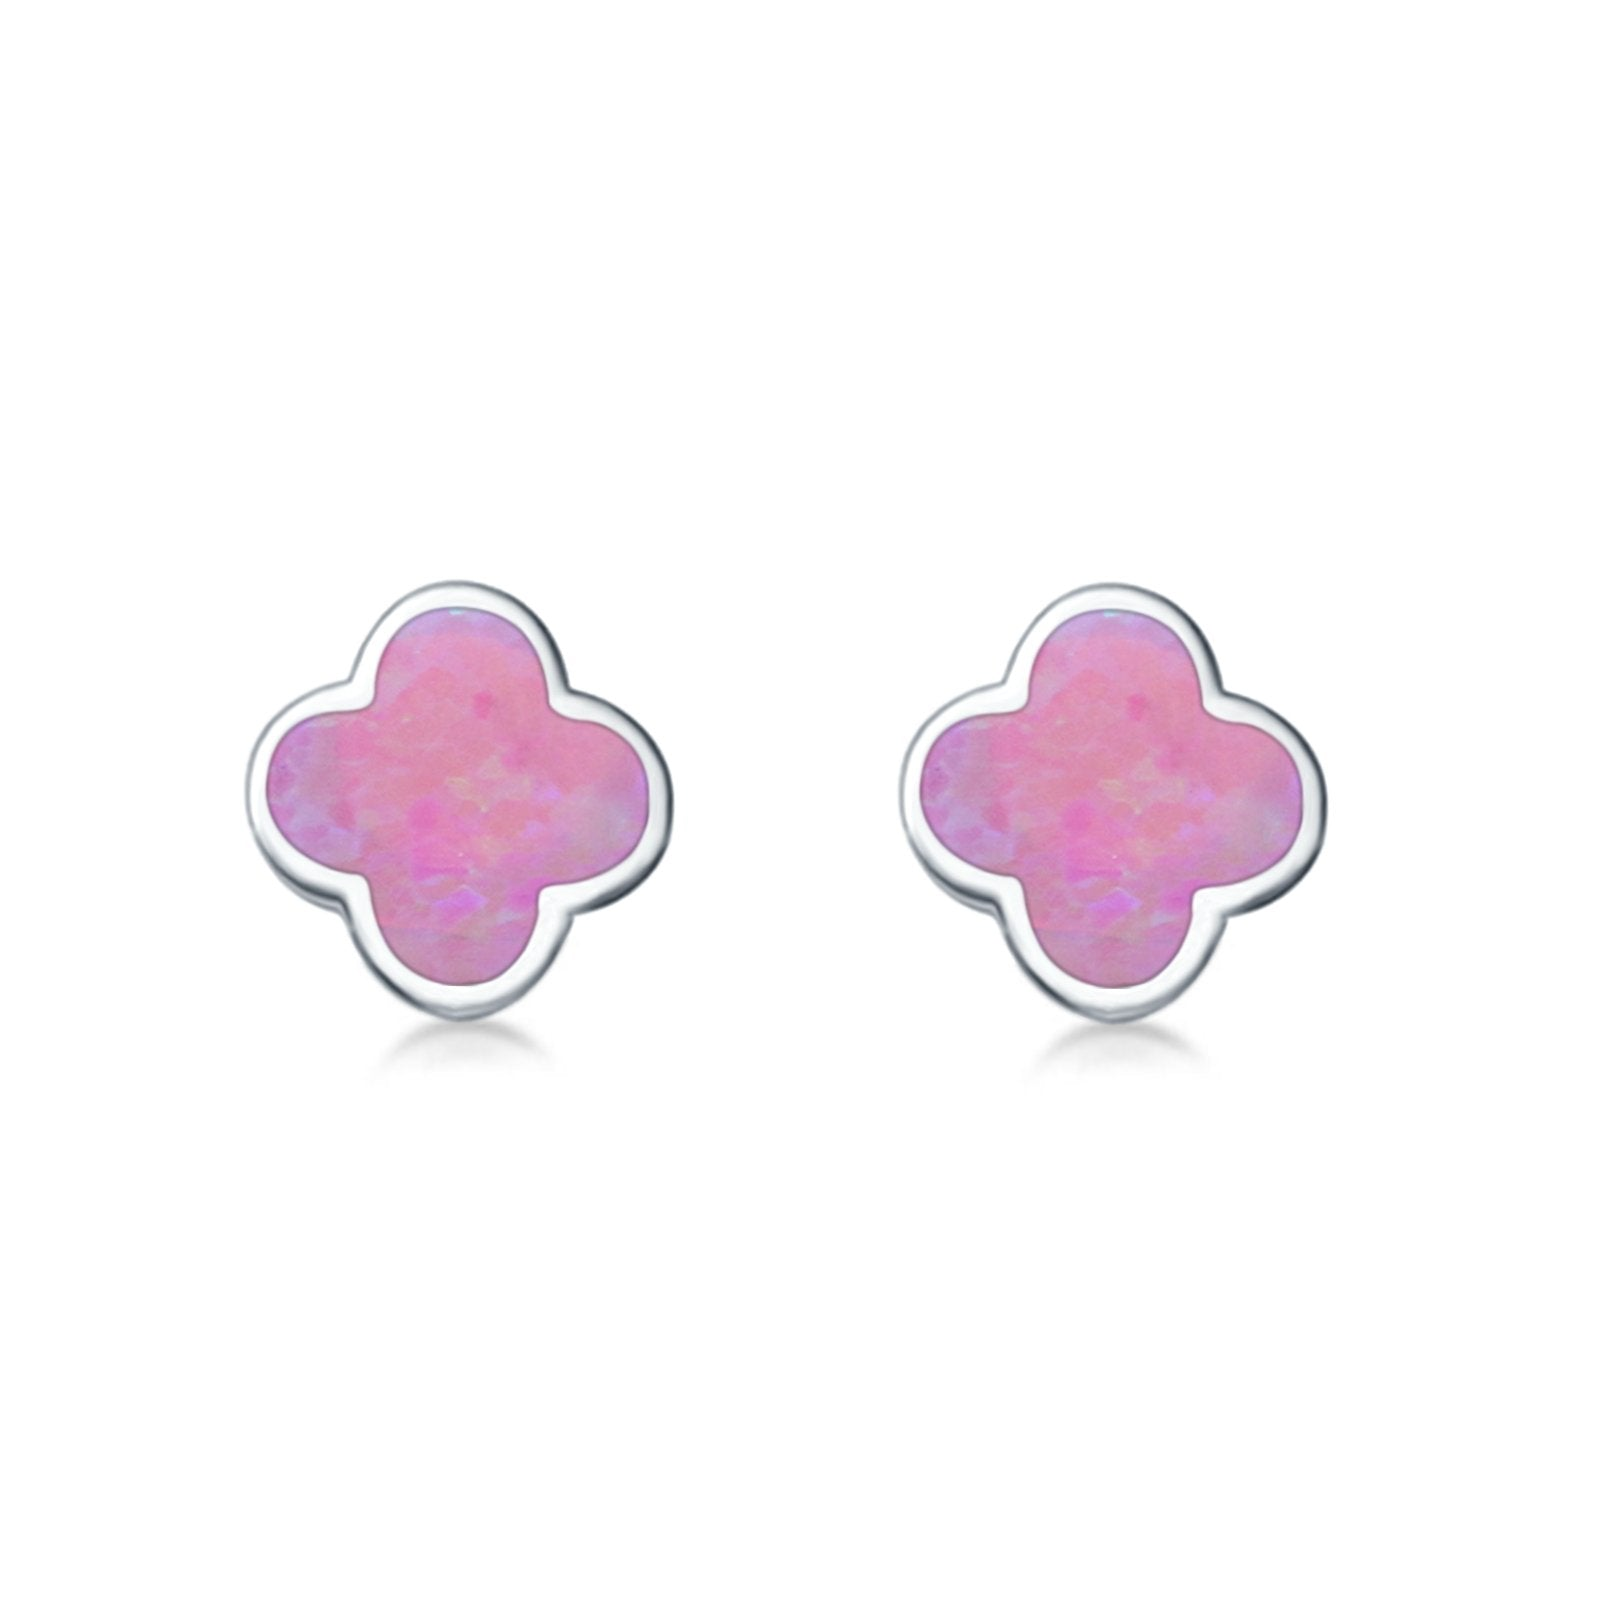 Clover Flower Stud Earring Lab Created Pink Opal 925 Sterling Silver (6.20mm)